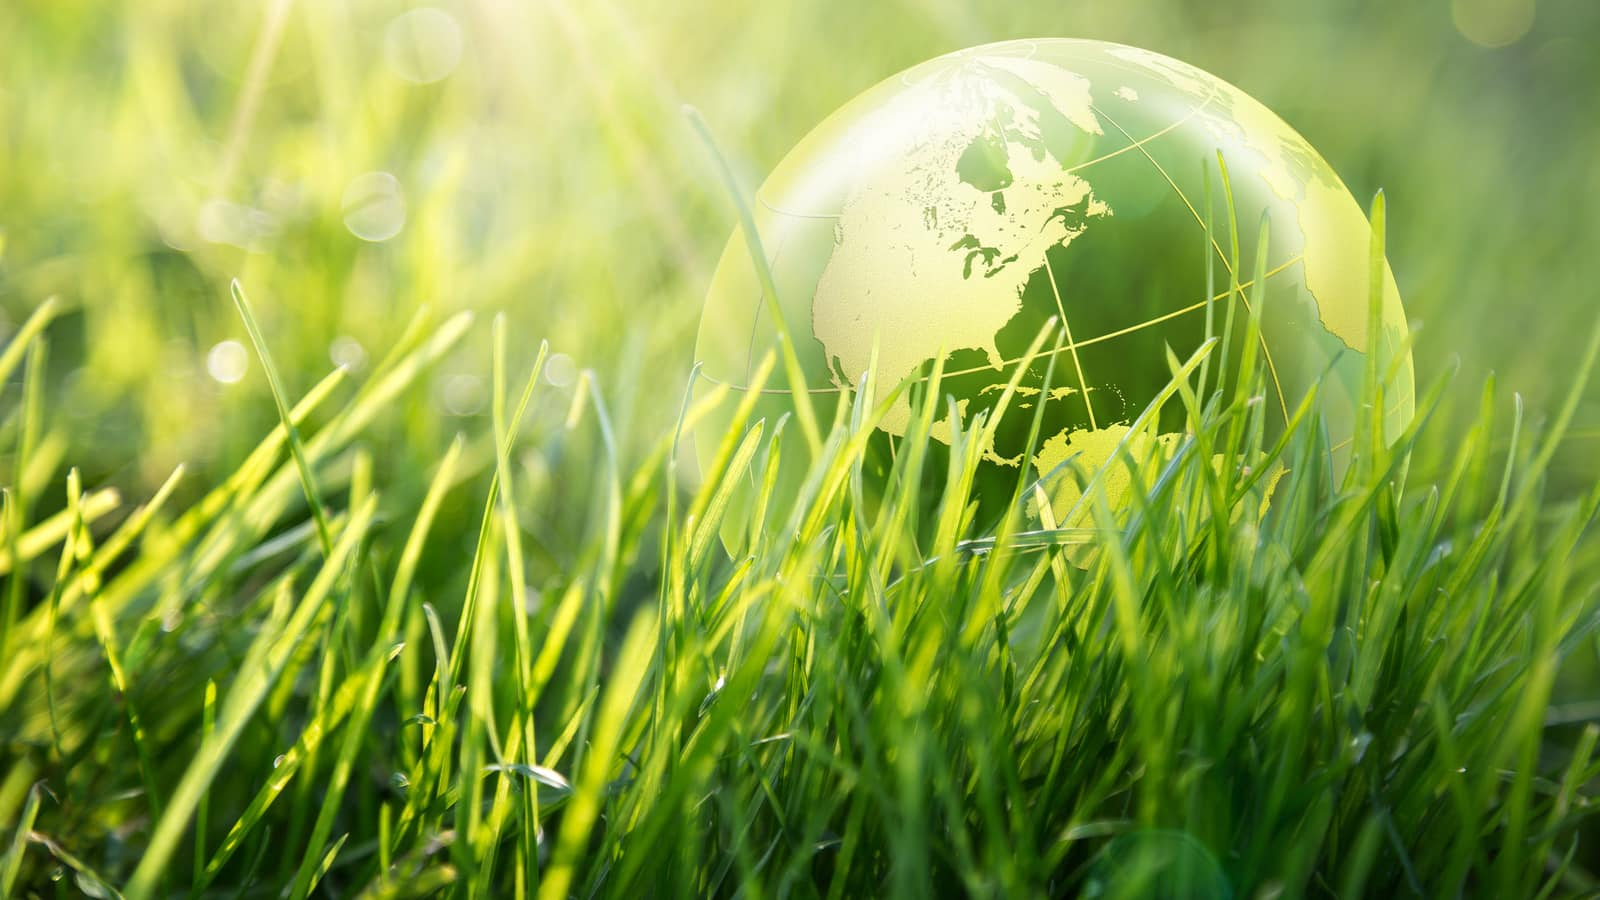 Green grass and globe